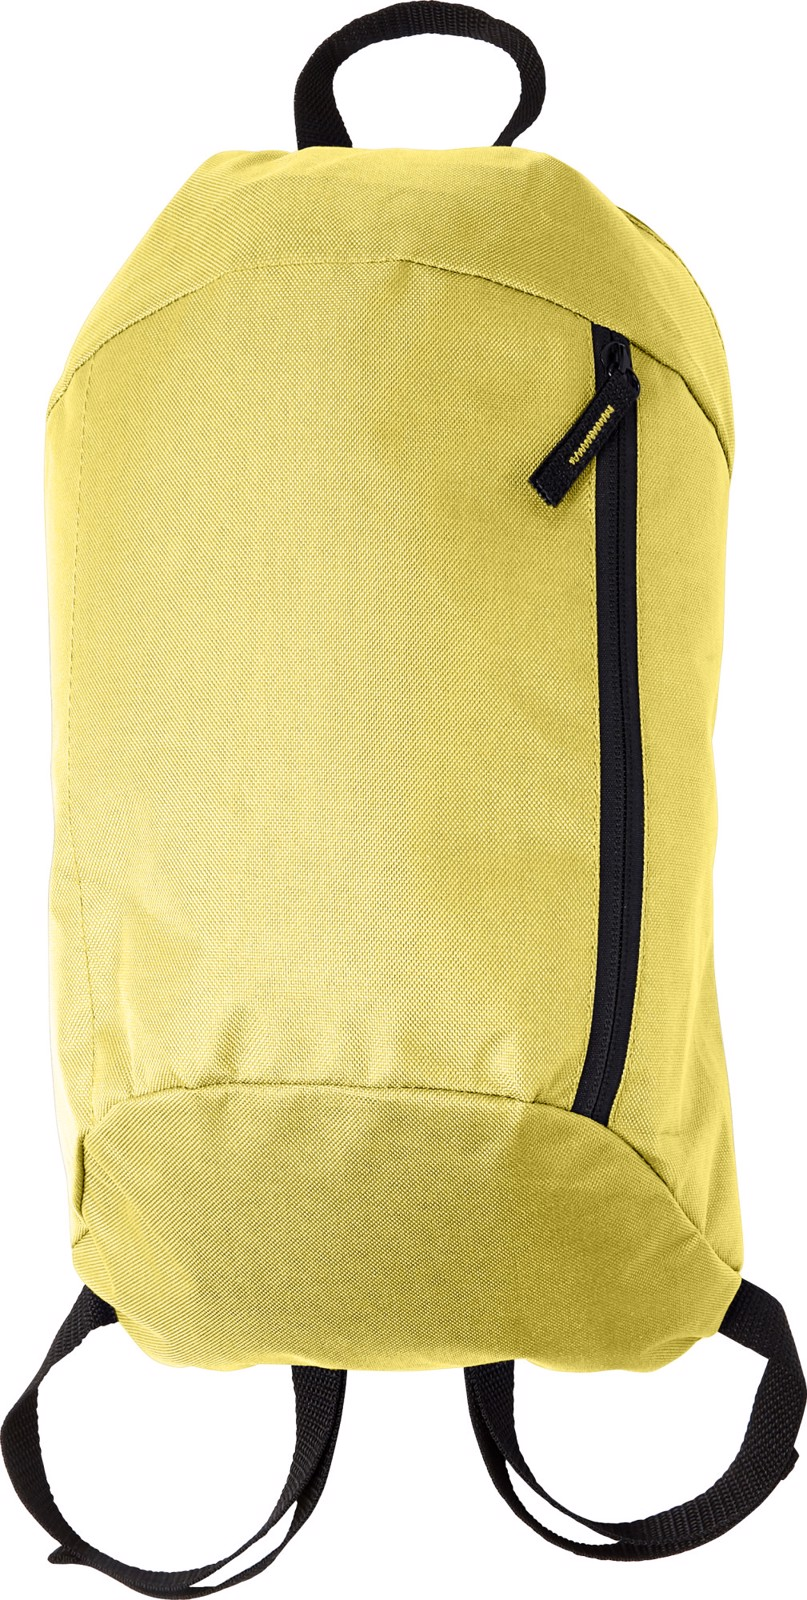 Polyester (210D) backpack - Yellow